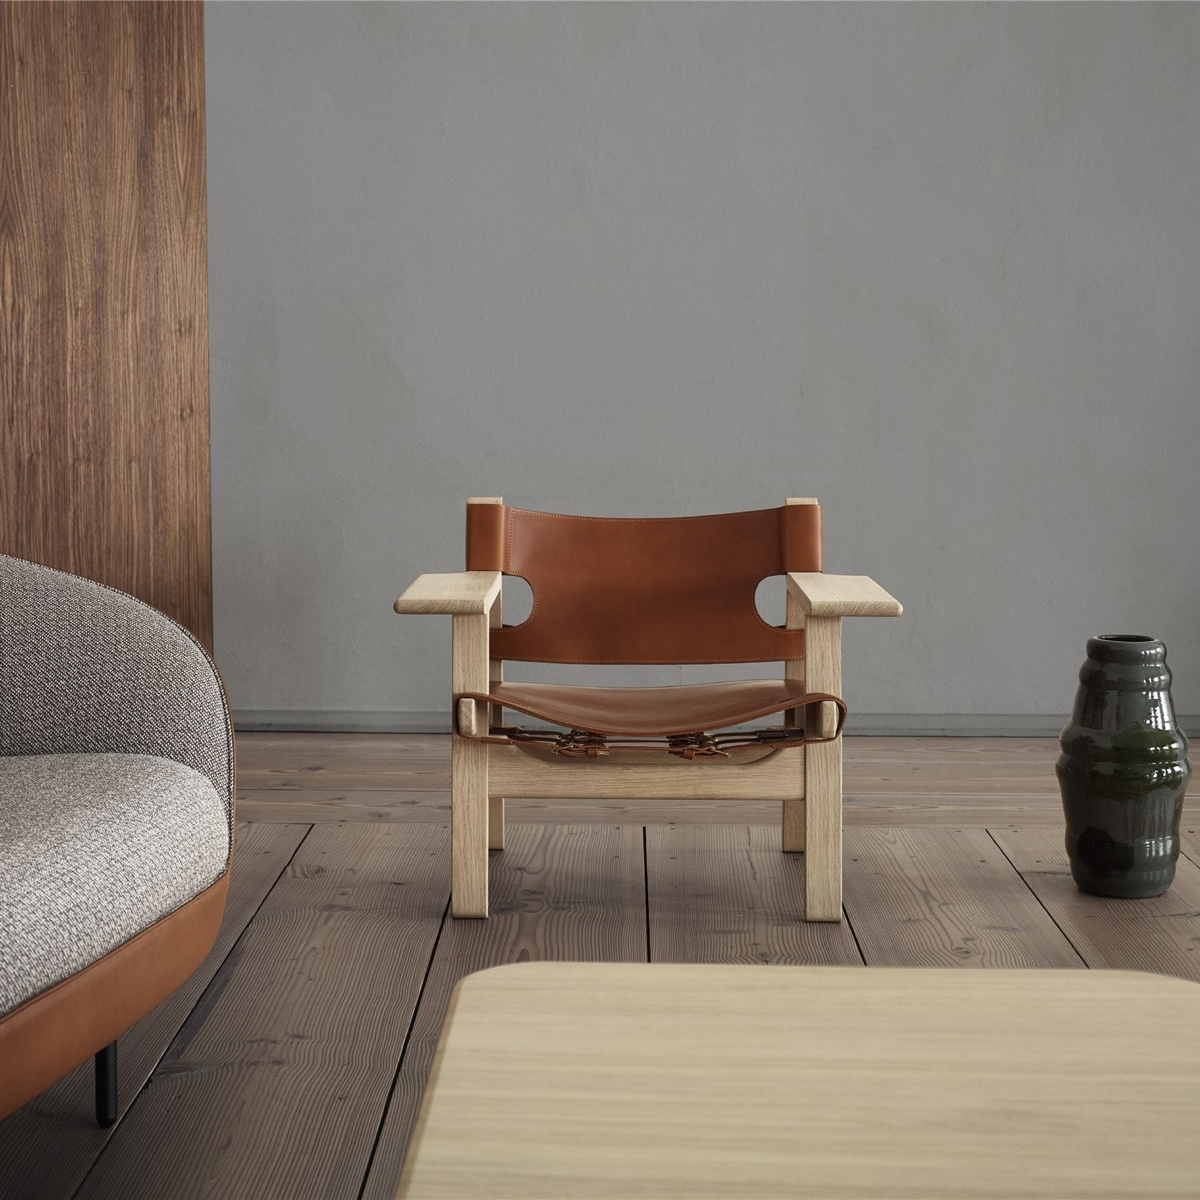 View In Gallery The Spanish Chair In Oak With Cognac Coloured Saddle Leather .